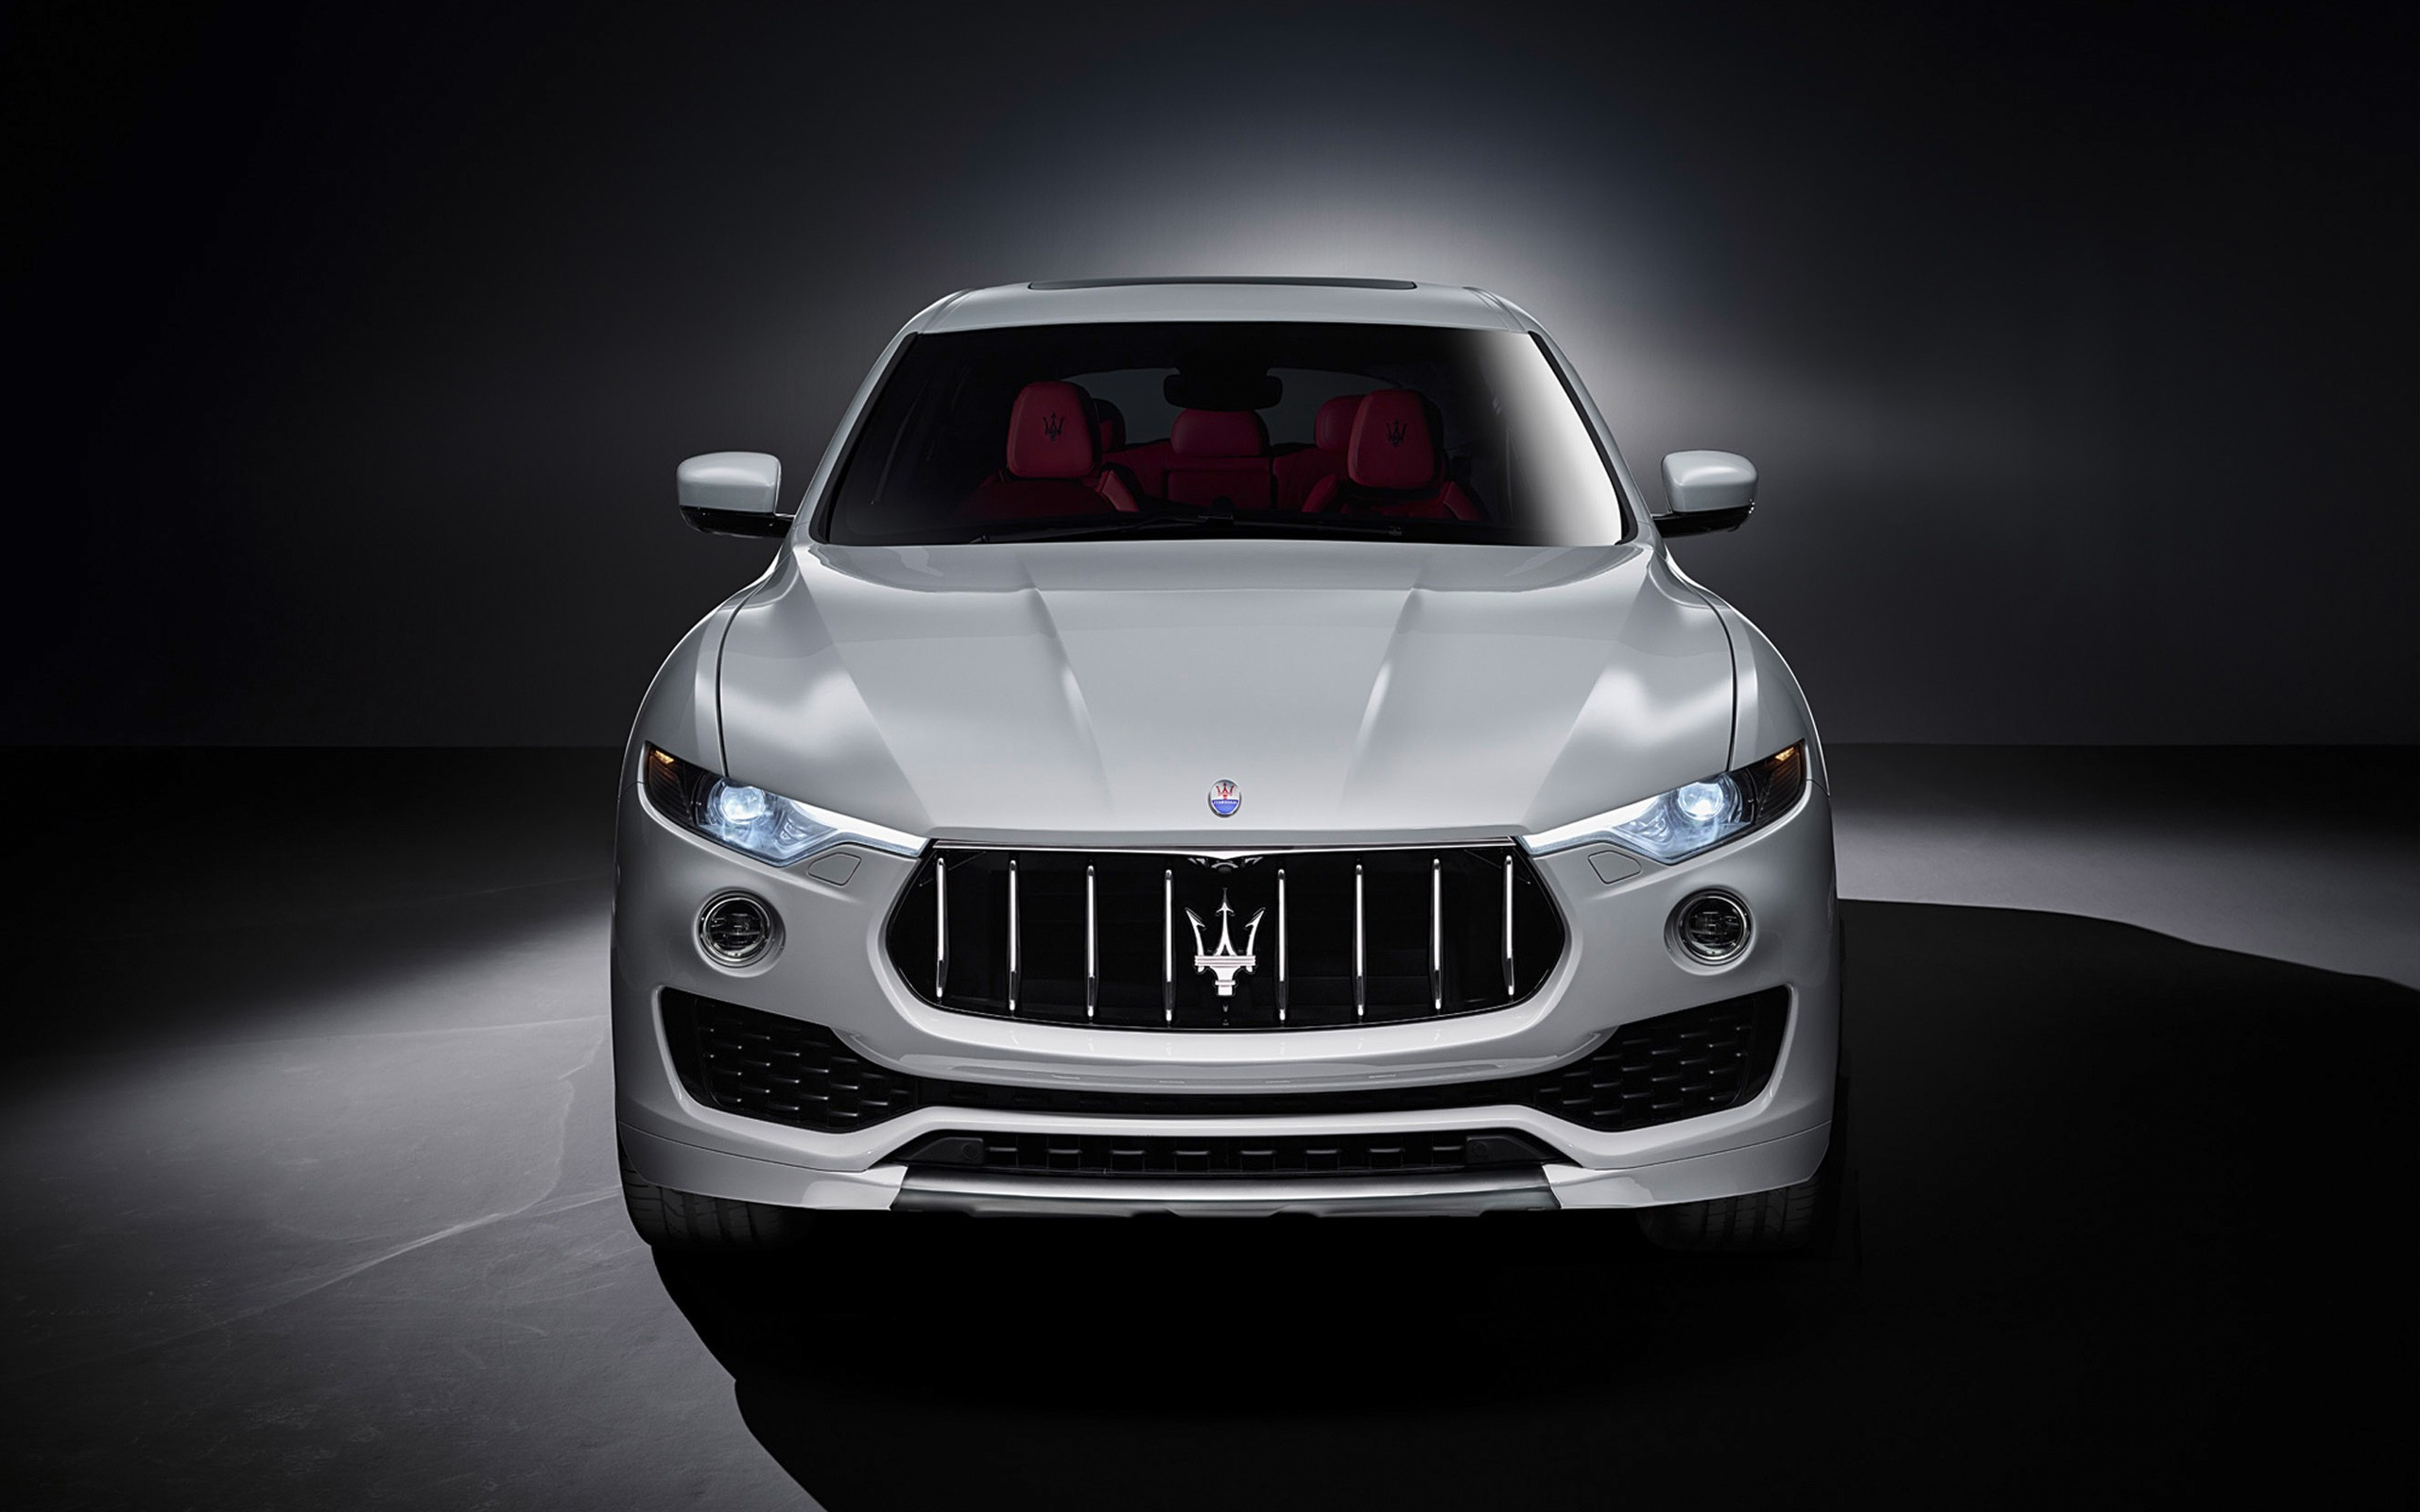 Maserati levante 2016 hd cars 4k wallpapers images backgrounds photos and pictures - Maserati levante wallpaper ...